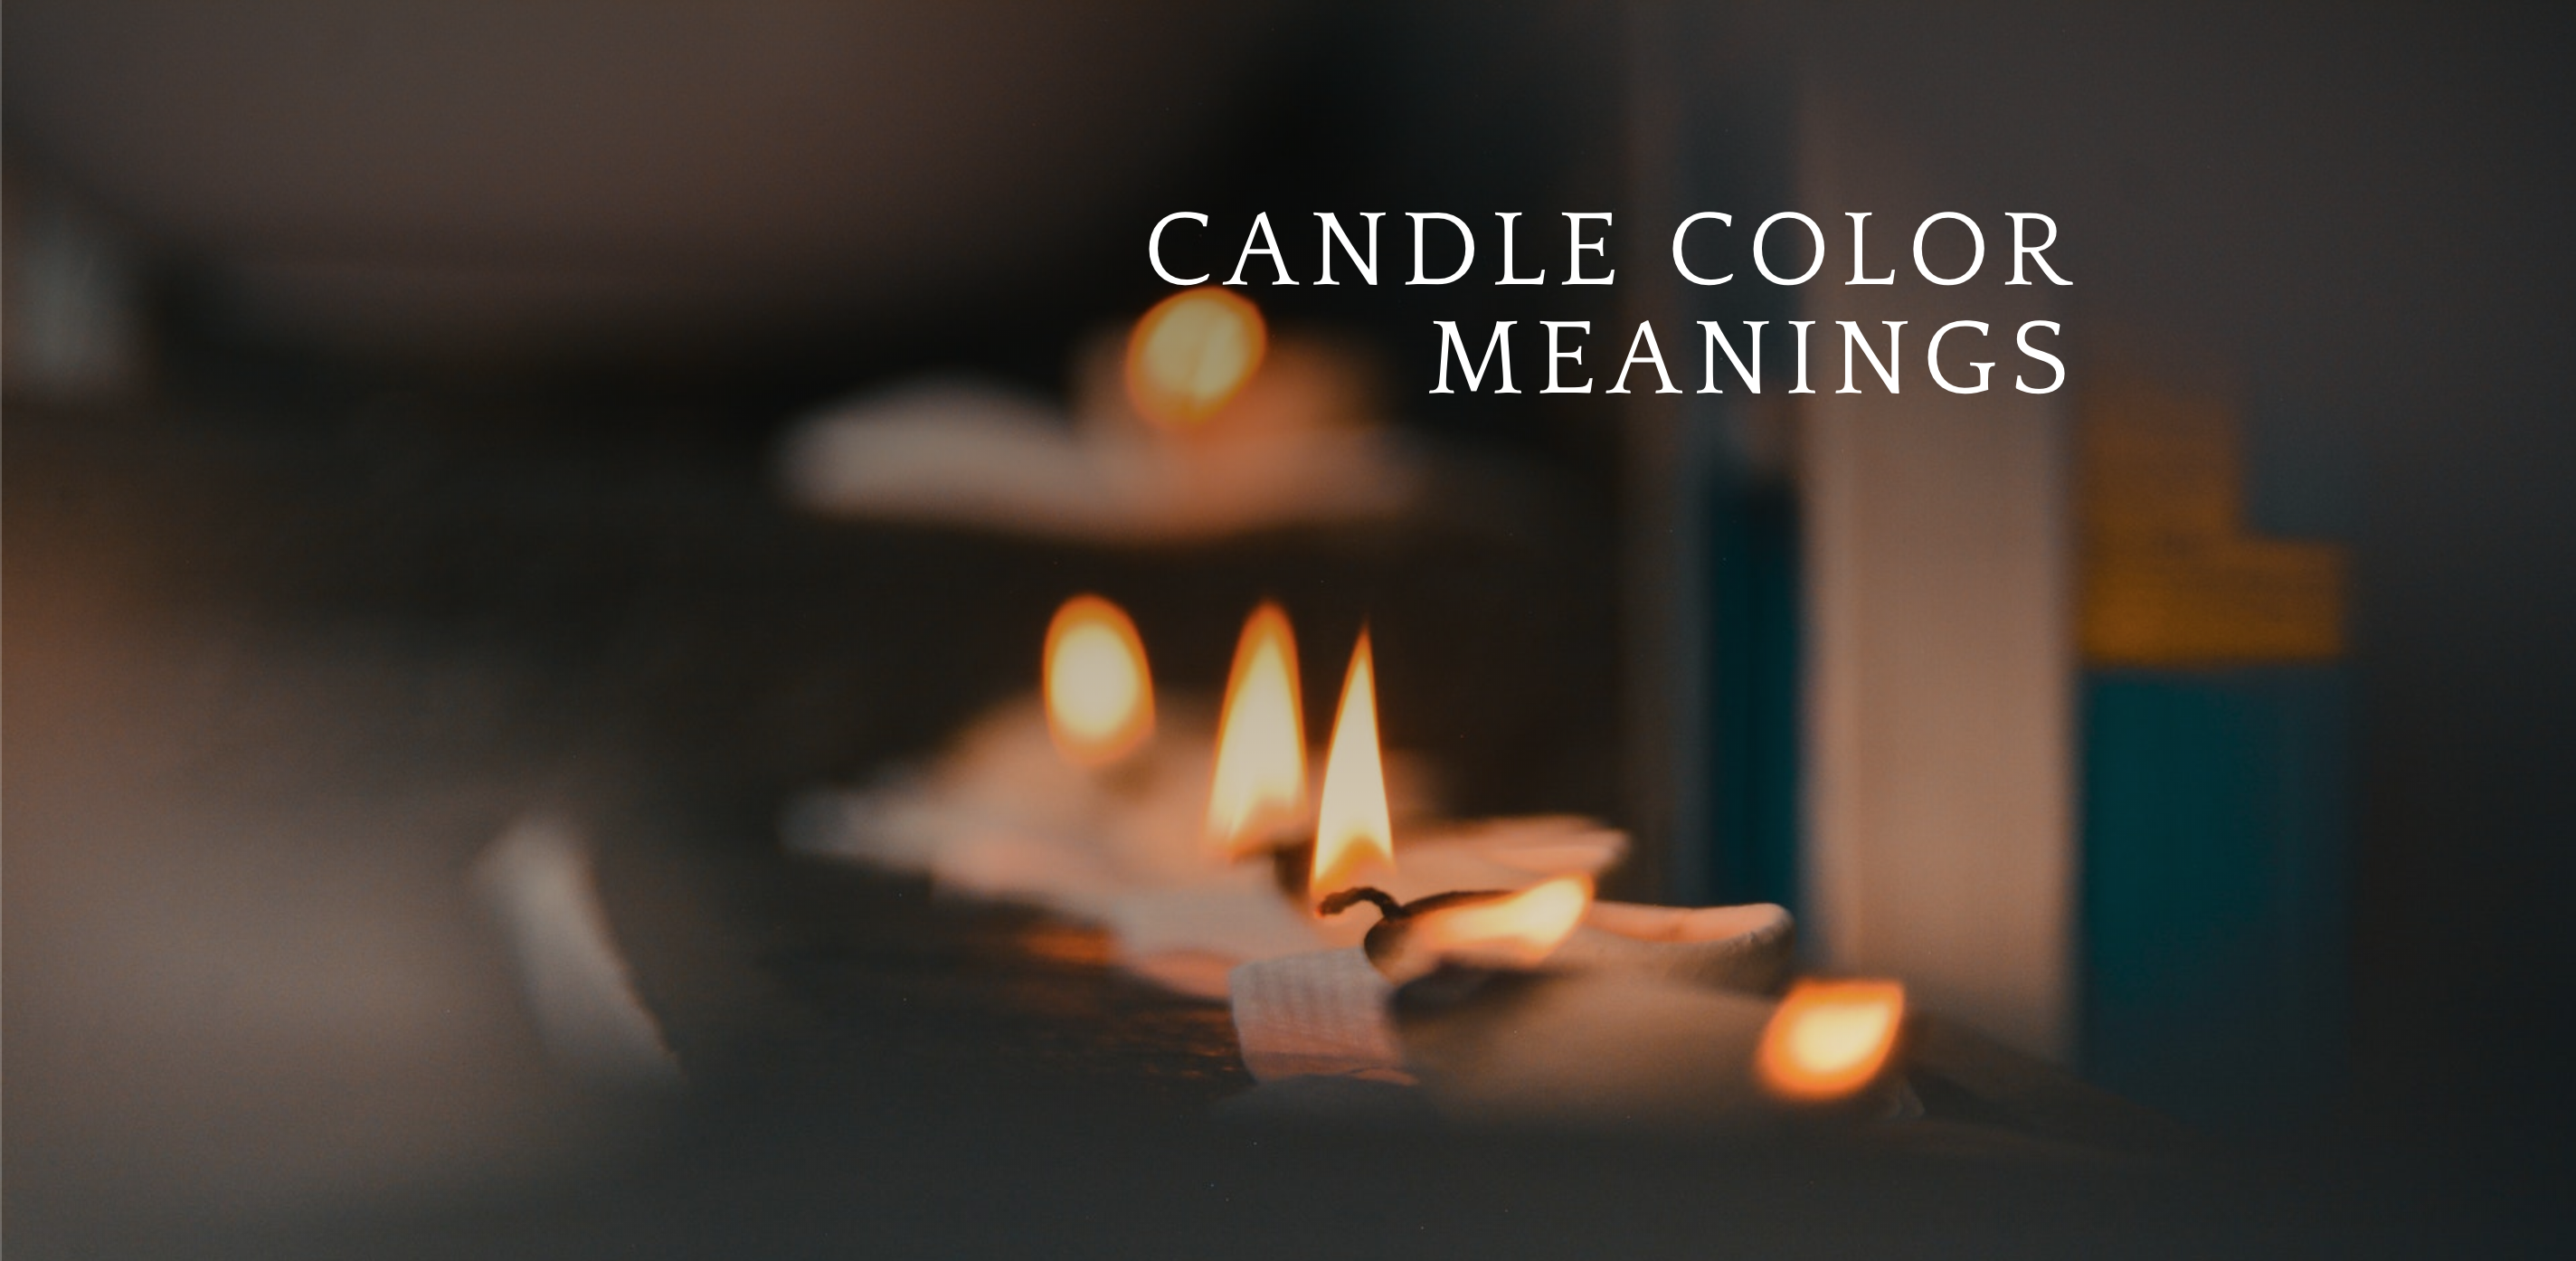 CANDLE COLOR MEANINGS #candlemagick Candle magick can be as simple or as complex as necessary- but one thing's for certain, candle color meanings always matters.  Candle magick is a simple way to lend more power to your spells with the inclusion of candles and their corresponding colors. Each color entreats varied energies into your work.  Learn the colors with us to aid you in your candle magick.  #candlemagic #magick #witchcraft #witch #wicca #spells #pagan #candlecolors #magicalherbs #witch #candlecolormeanings